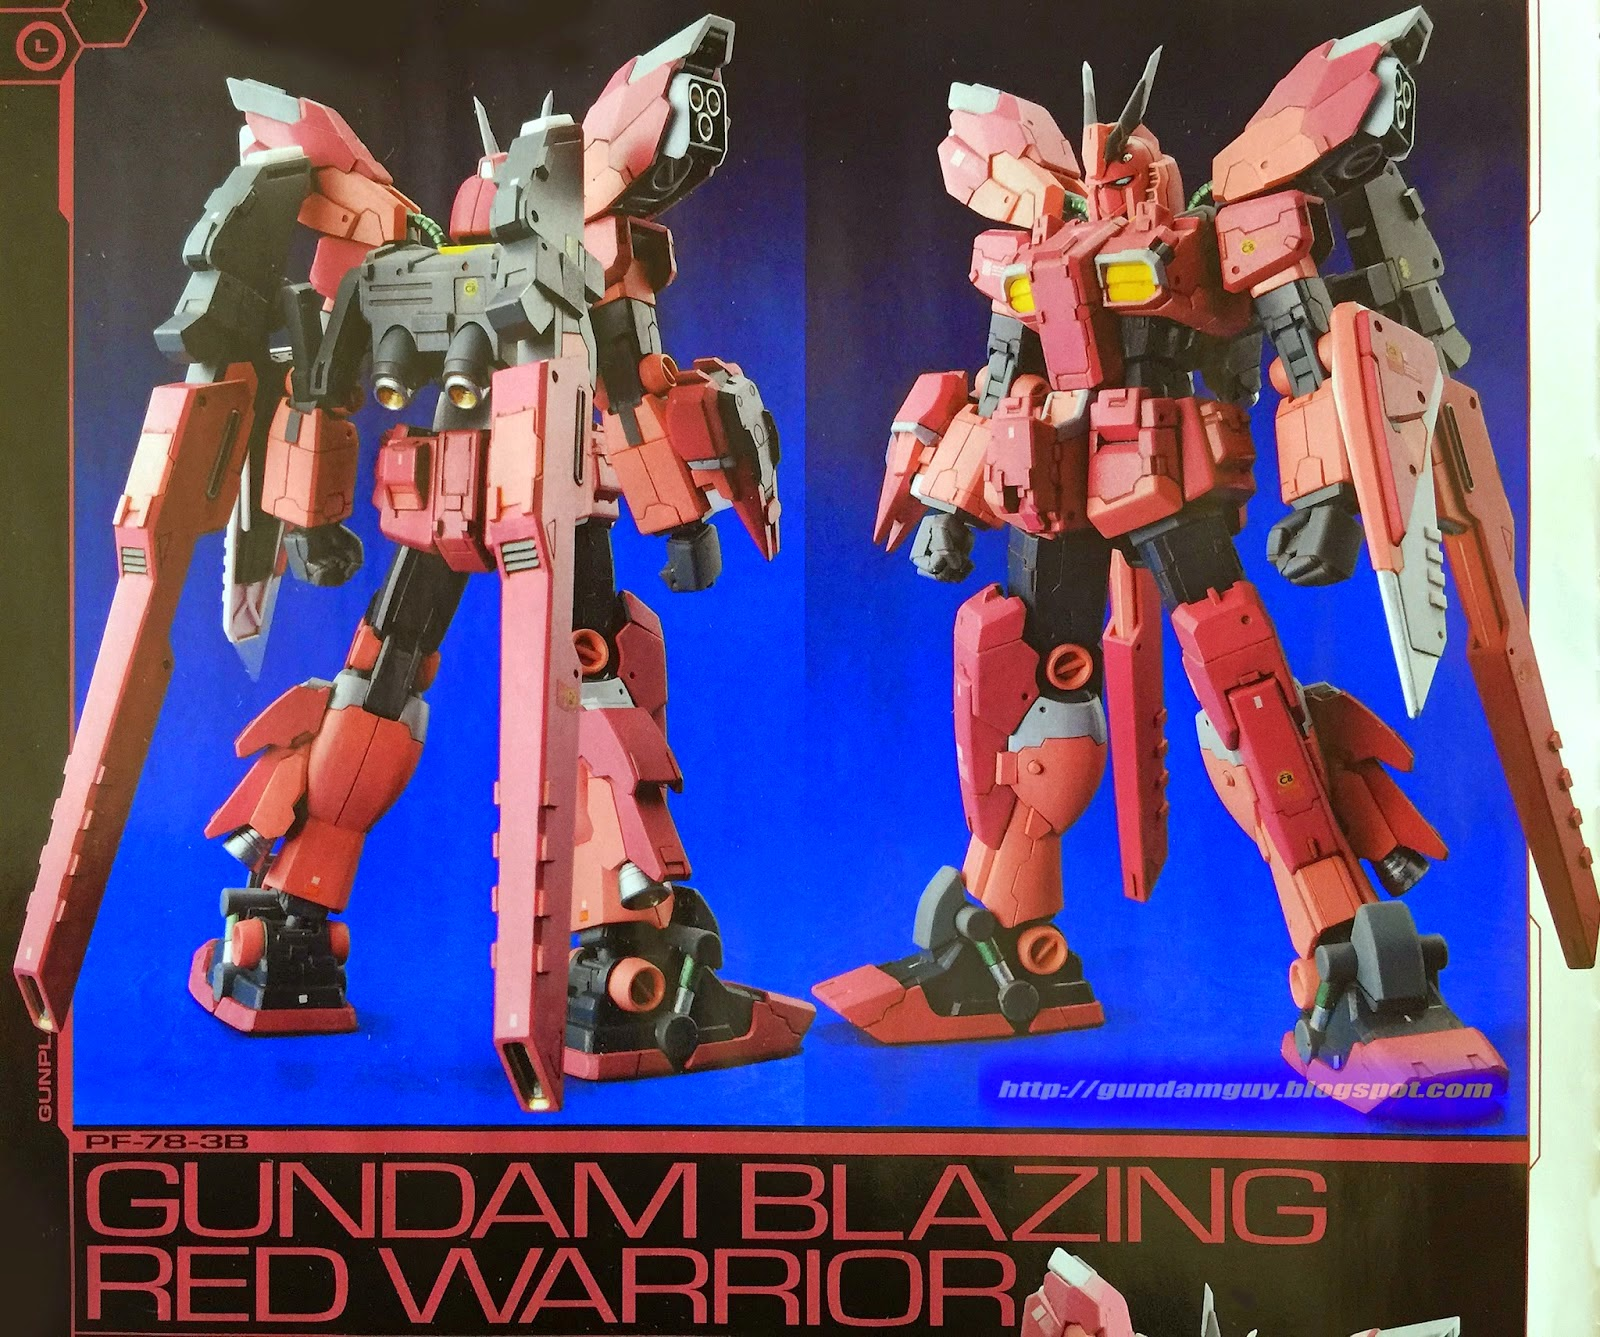 The Blazing Star Warriors: Gundam Family: 1/144 Gundam Blazing Red Warrior Custom Build